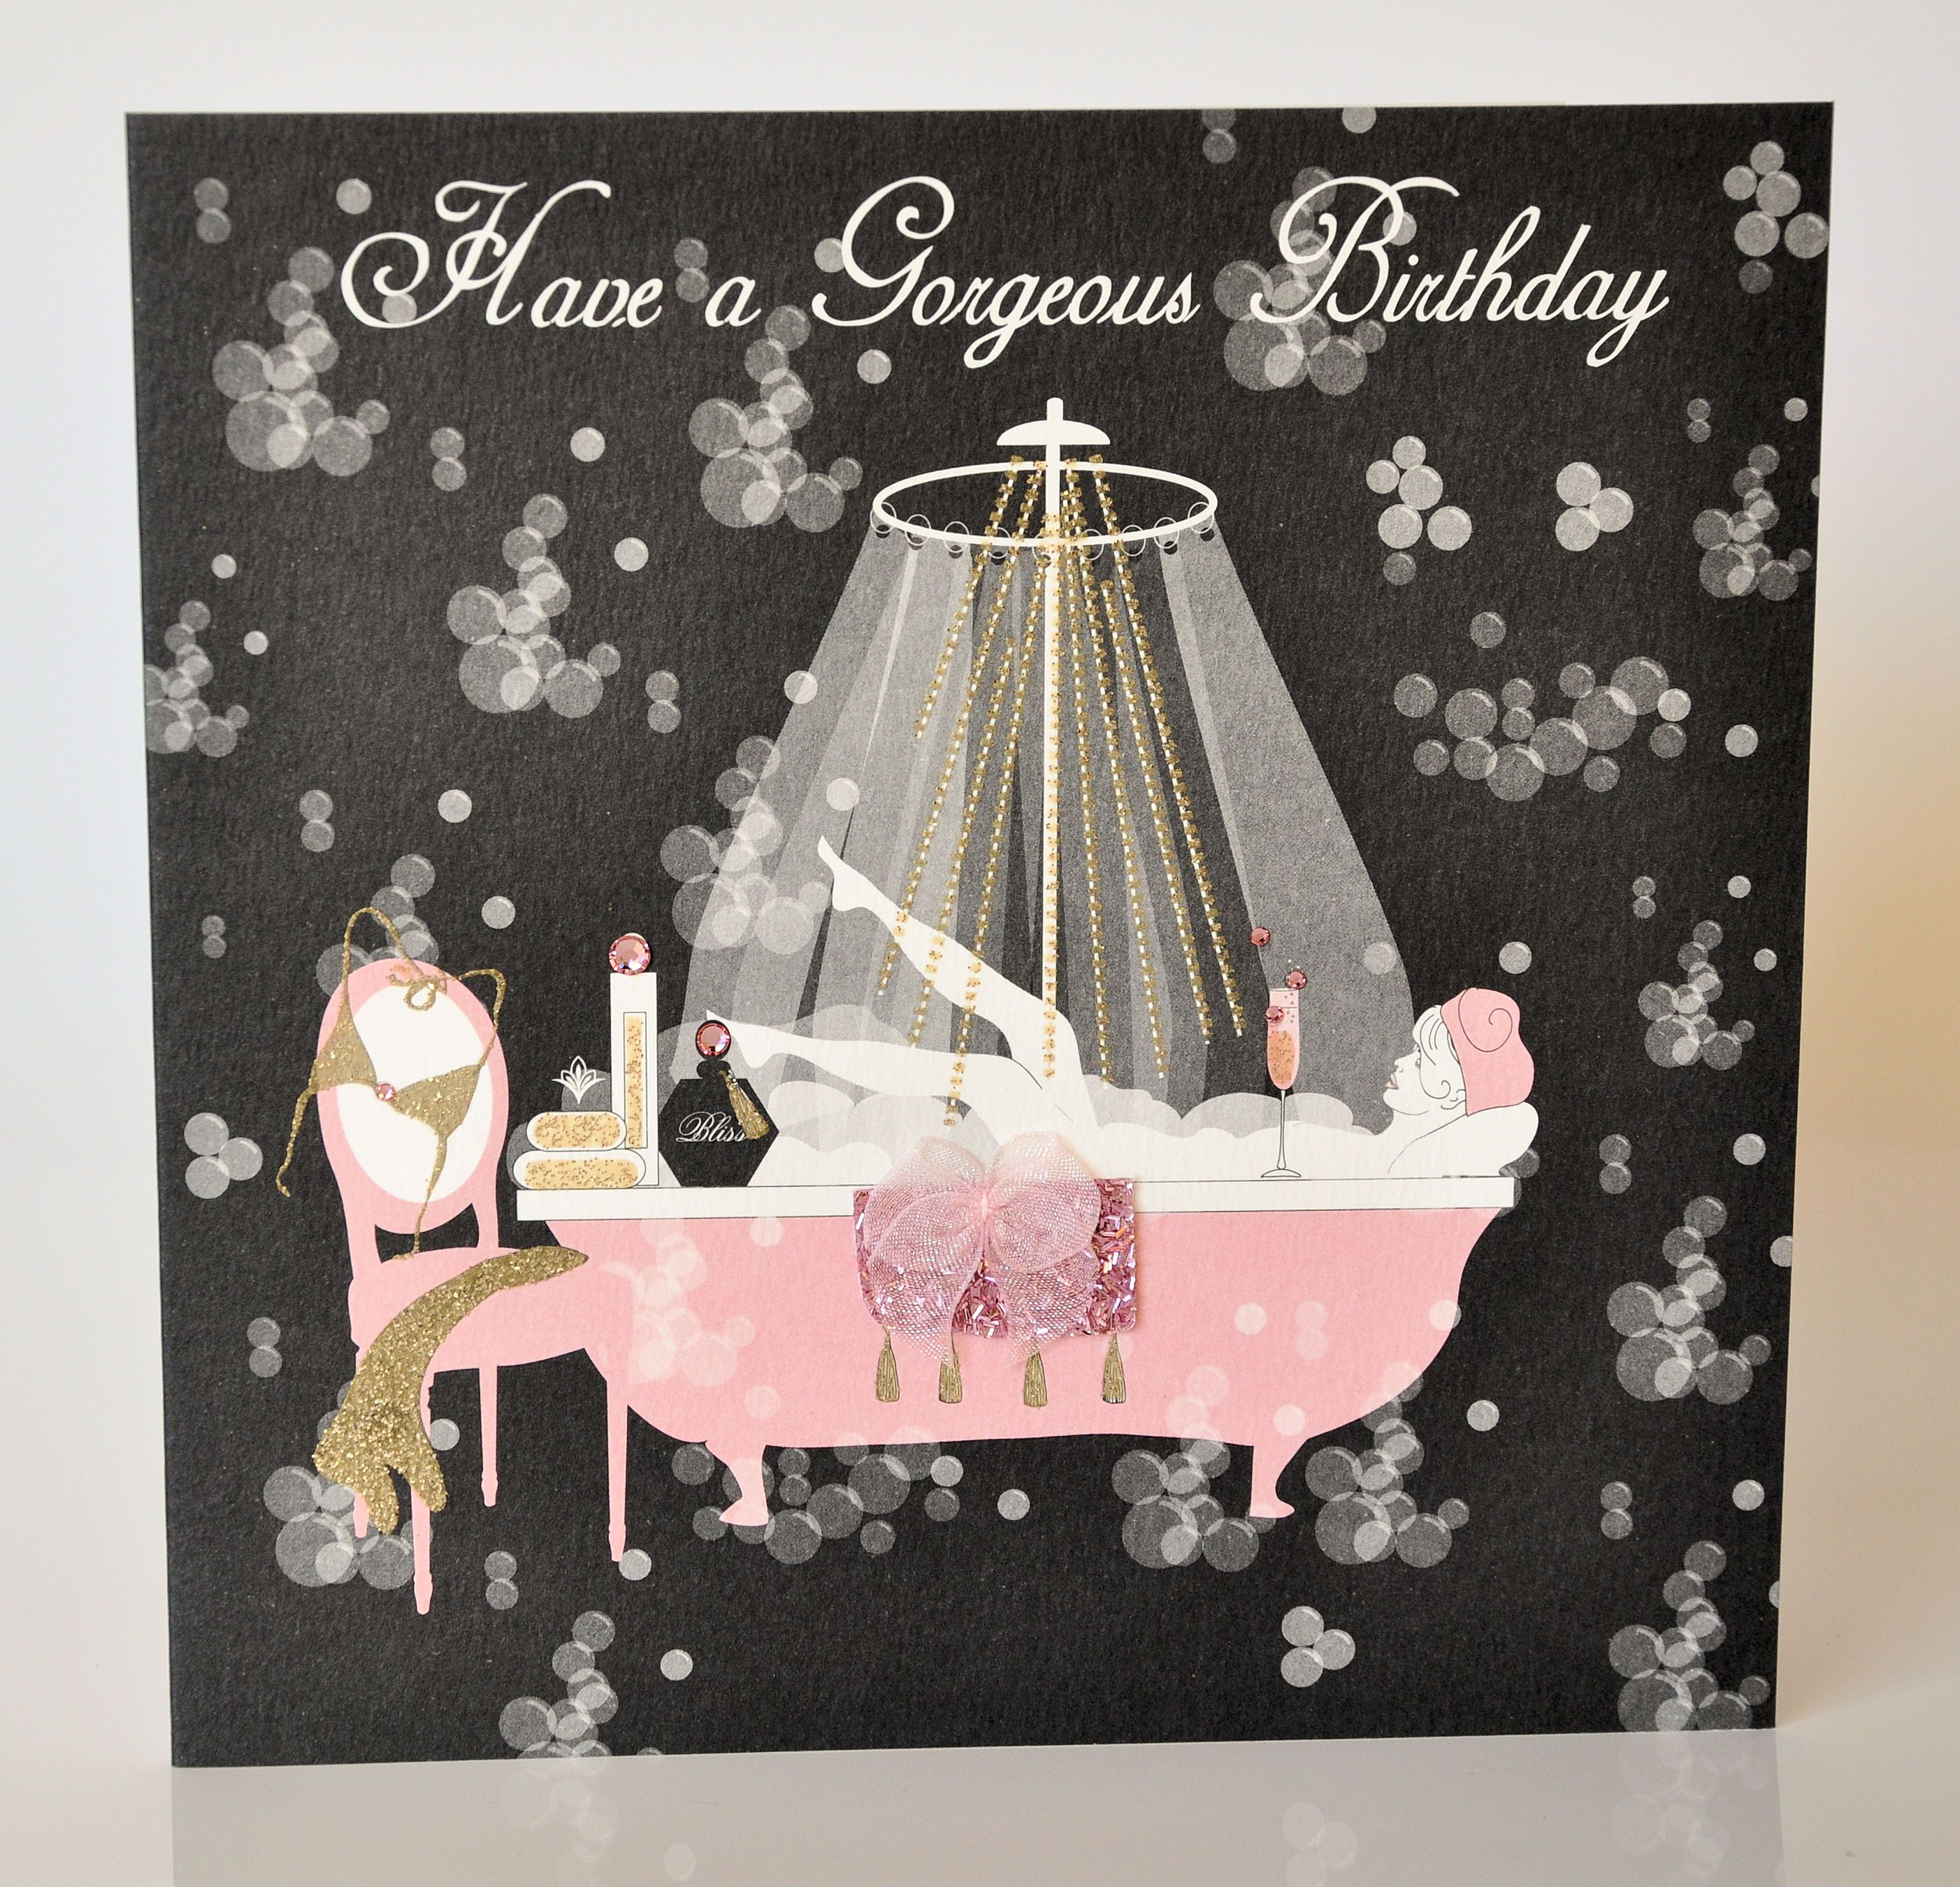 Here is  really cheeky birthday card for the girls! This gorgeous birthday girl is soaking in her bath tub drinking a glass of champagne! The cards has lots of glitter and Swarovski crystals.